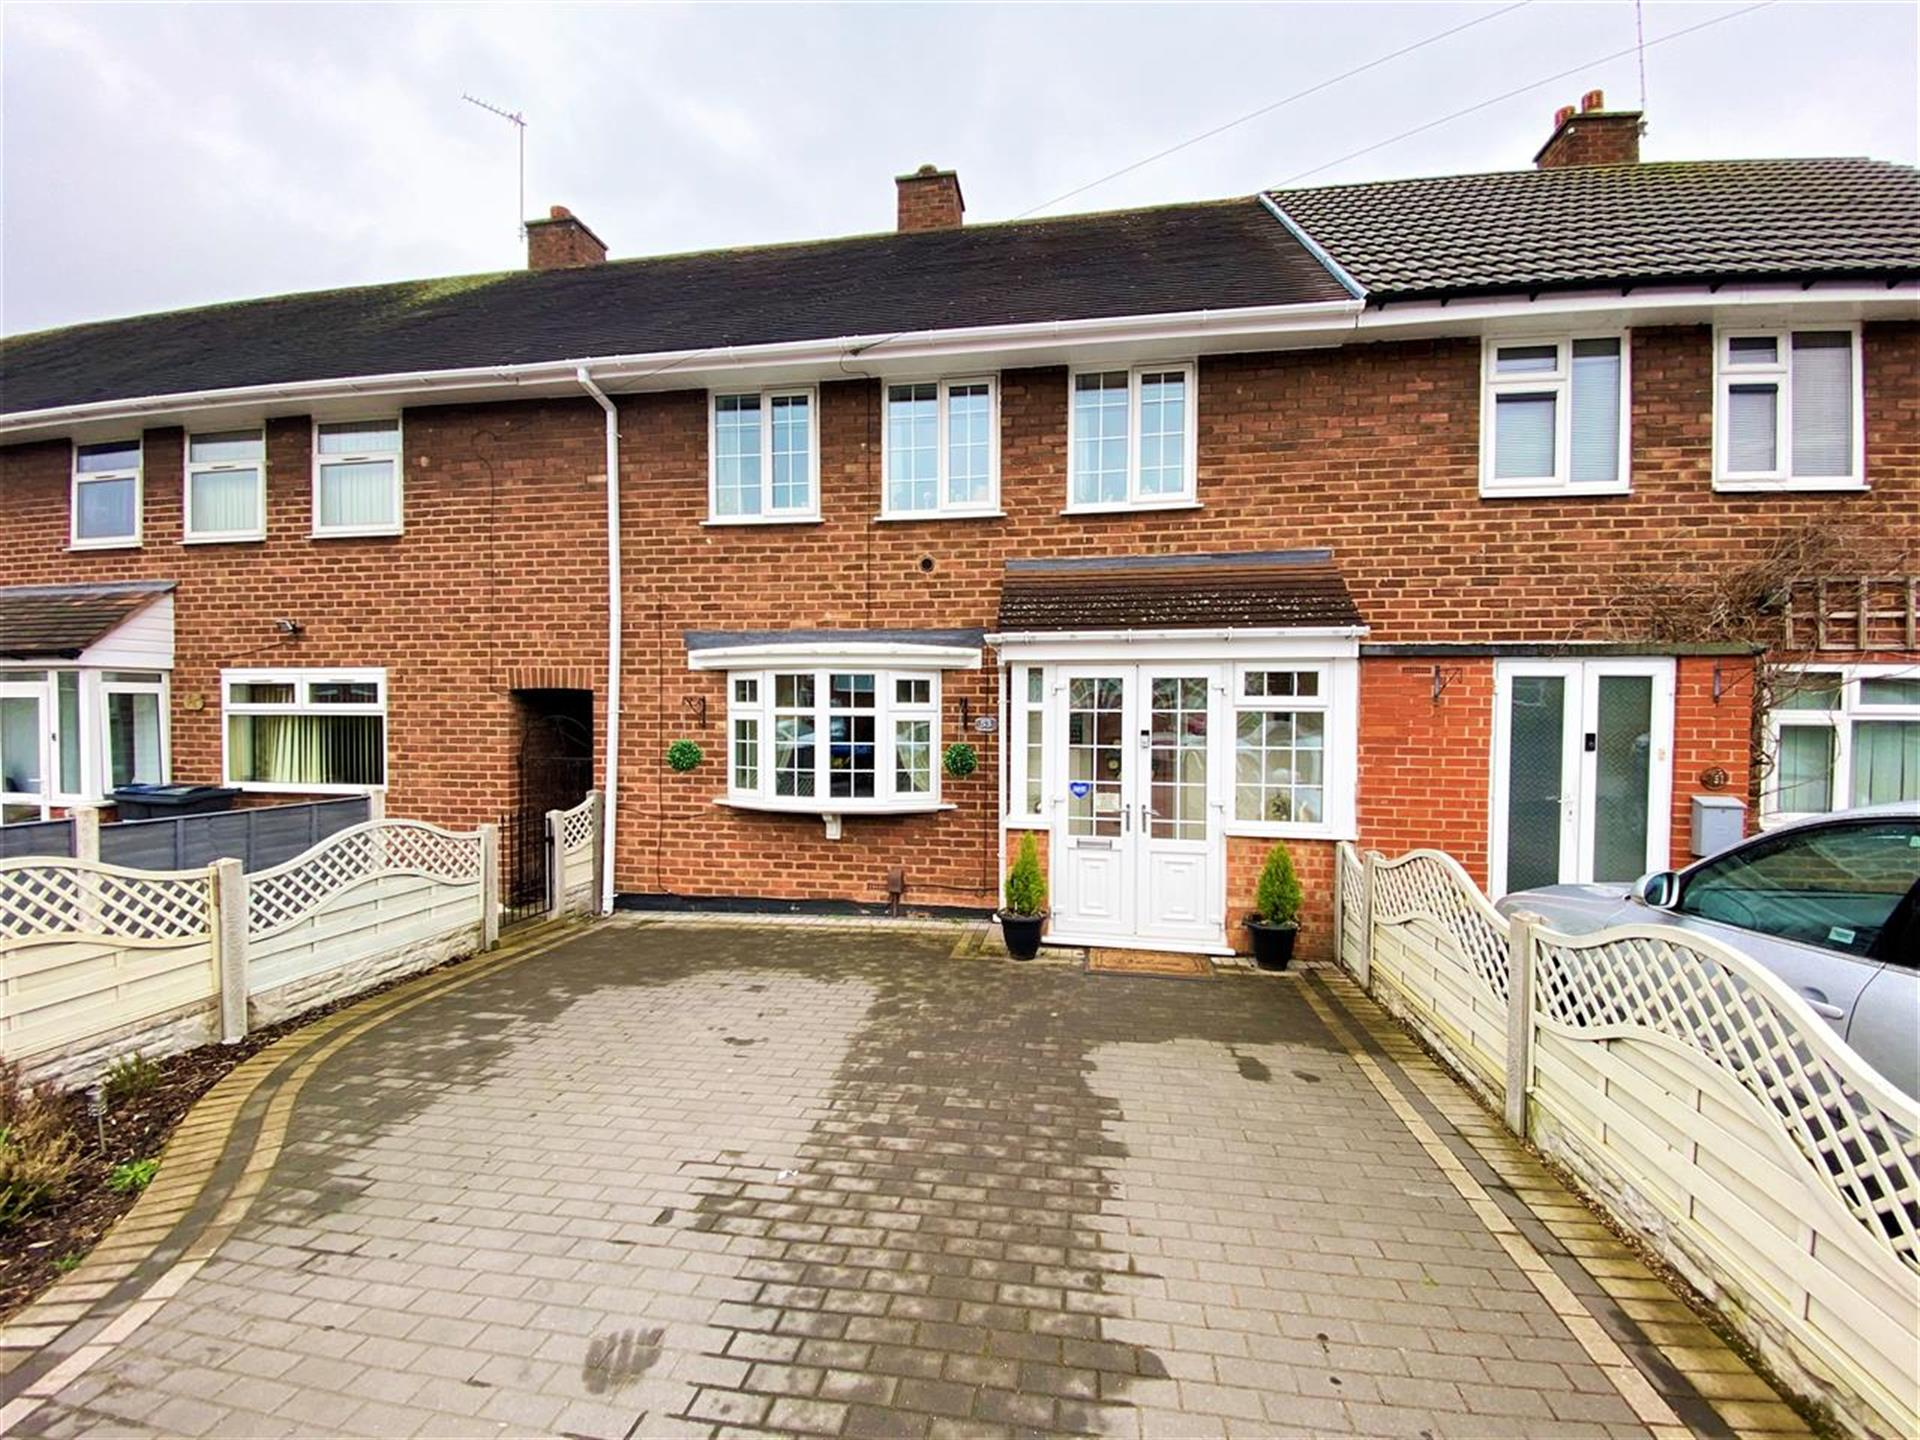 4 Bedroom Terraced House For Sale - Main Picture